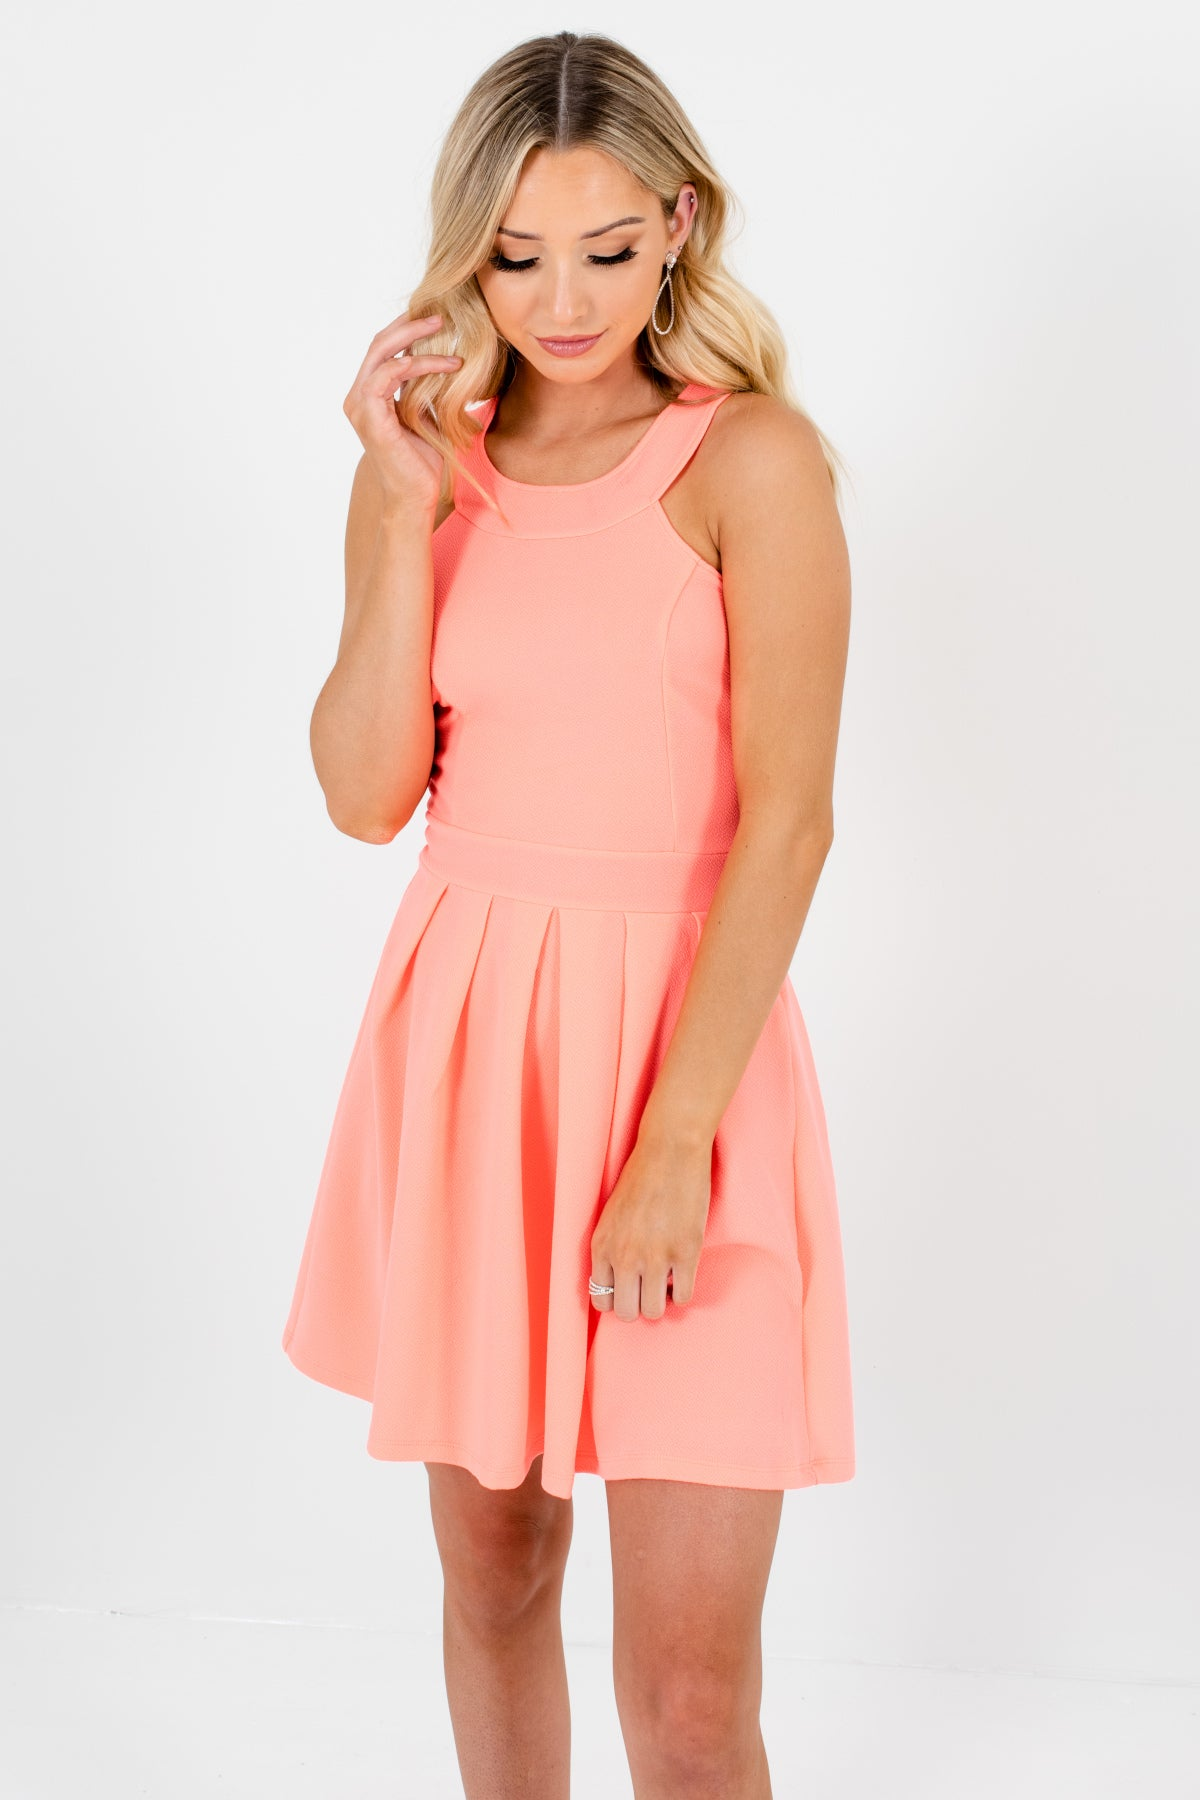 Bright Coral Pink Pleated Bow Back Mini Dresses Affordable Online Boutique